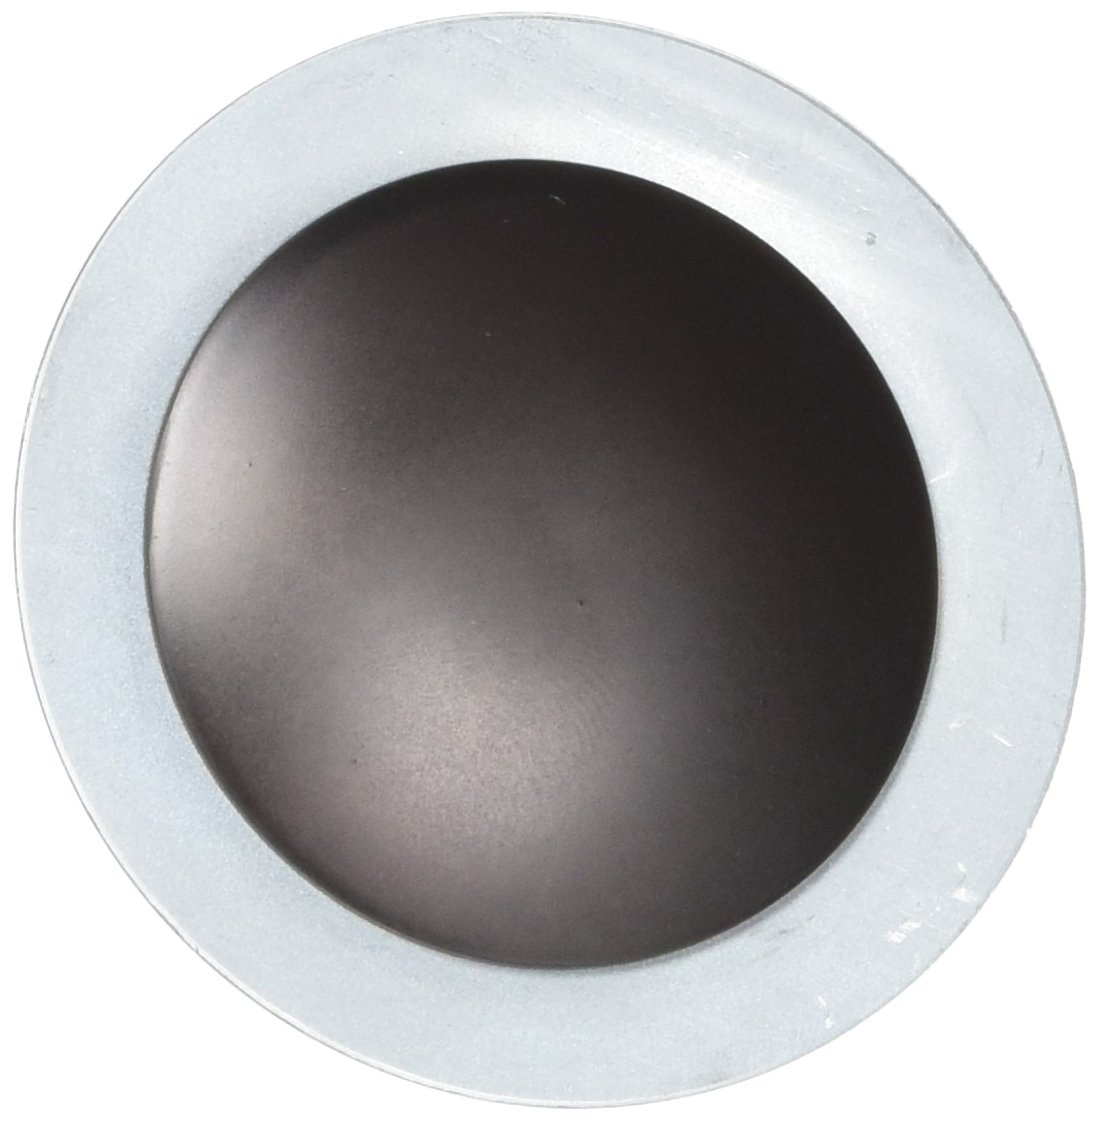 Jones Stephens B1020RB Oil Rubbed Bronze 1 3/4-Inch Cock Hole Cover